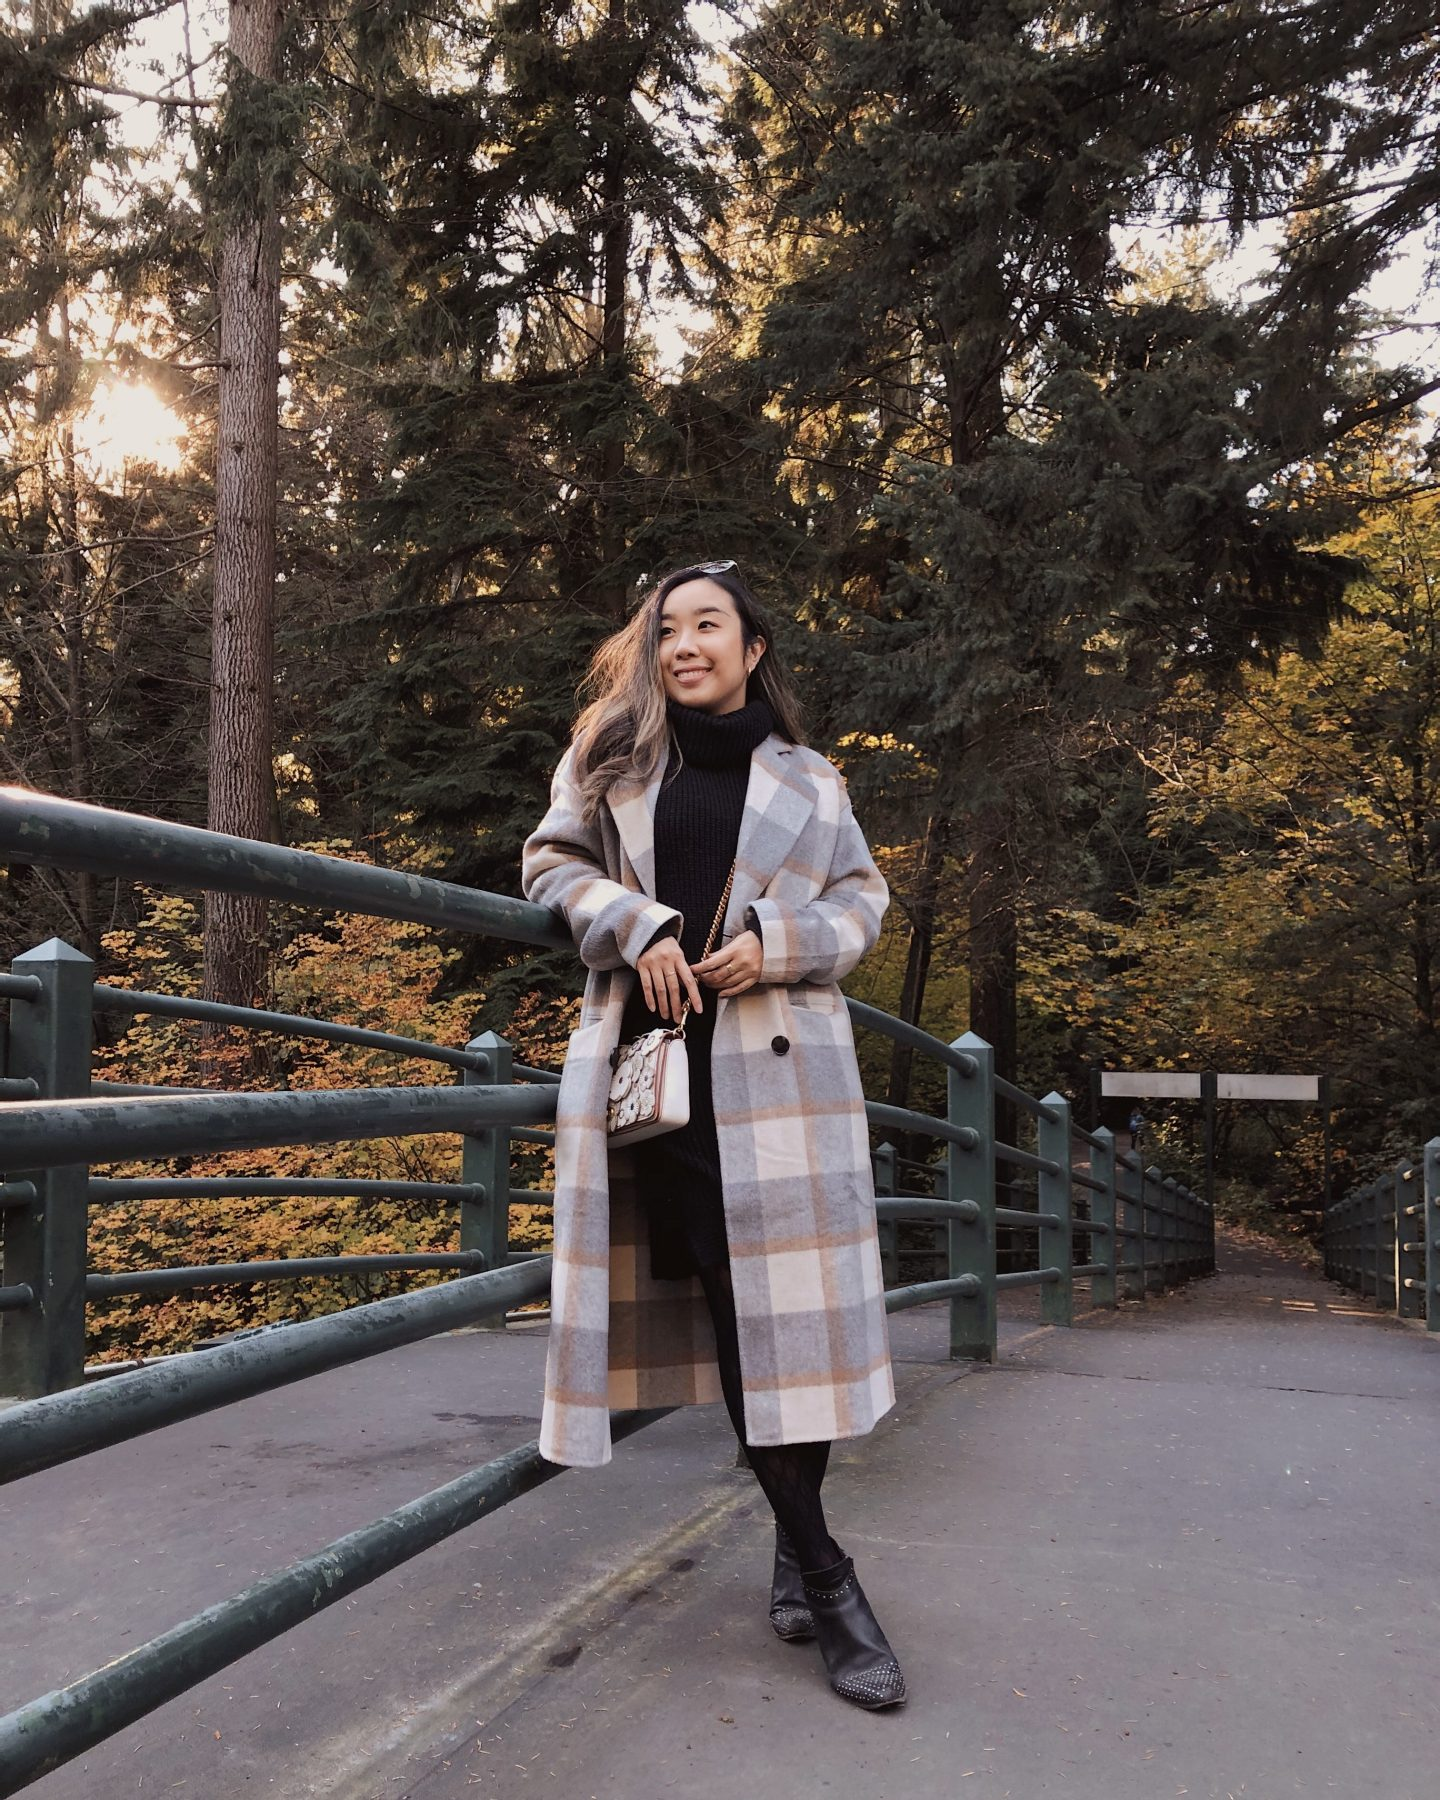 A crisp walk in the fall with my favourite plaid coat and black dress